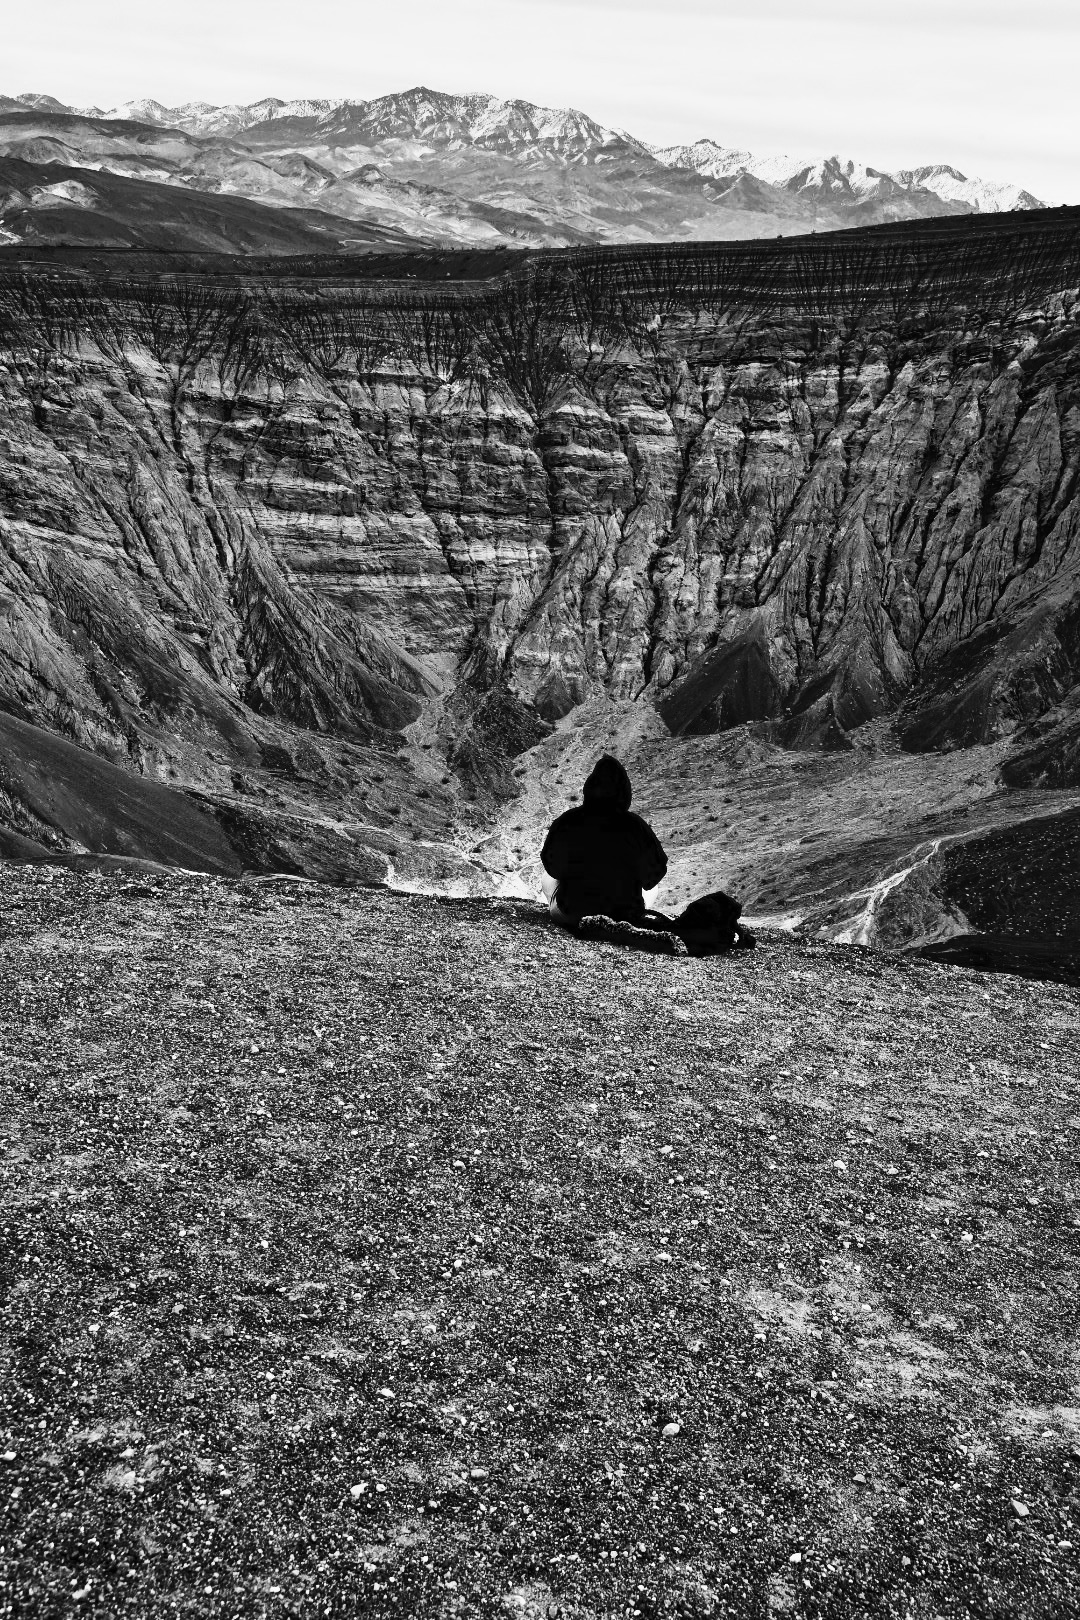 Hooded View of Death Valley Crater   WILLIAM C. CRAWFORD  Digital photography, 2015